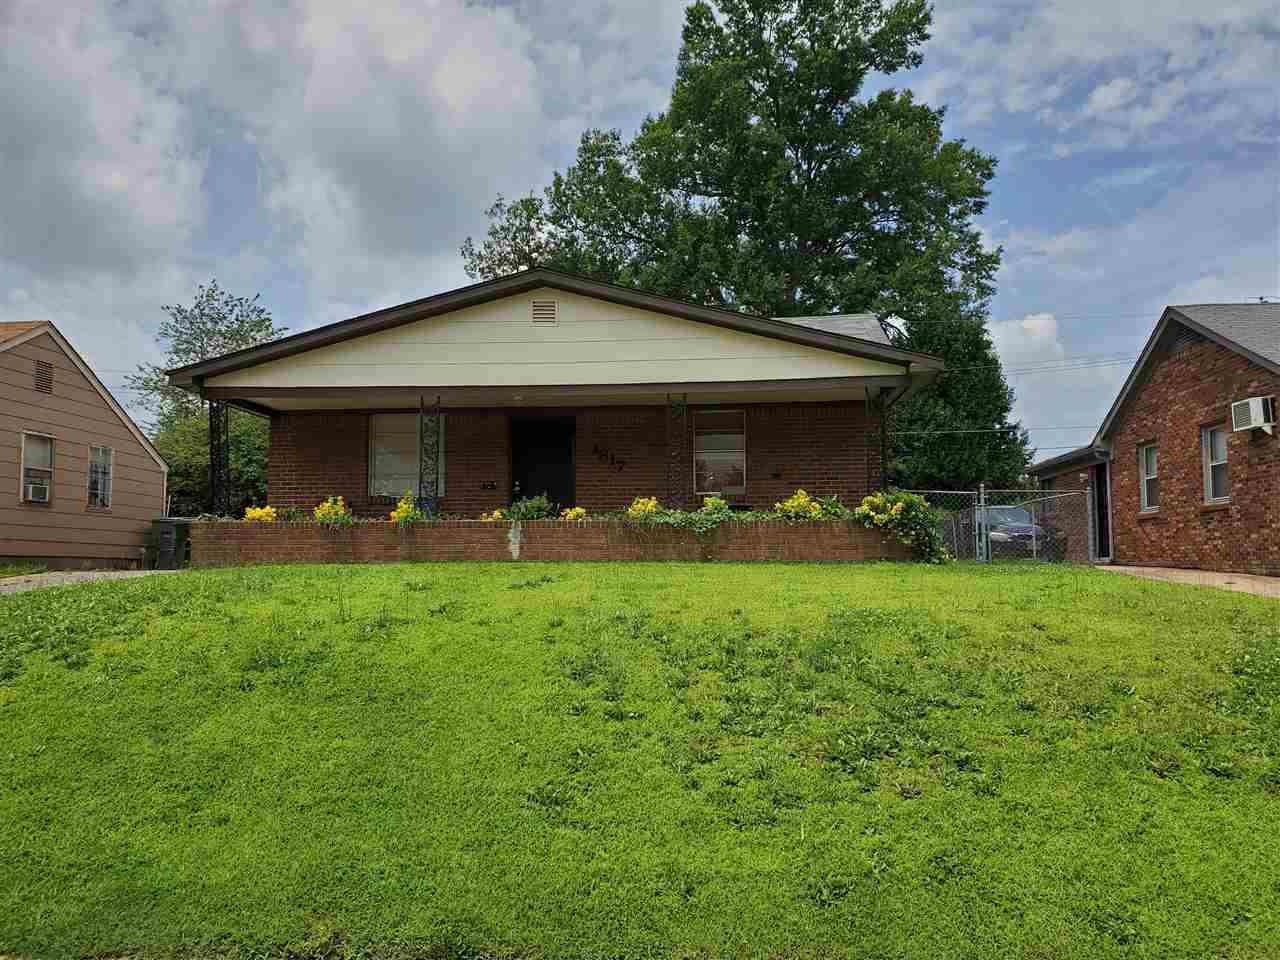 1817 Barksdale St - Photo 1